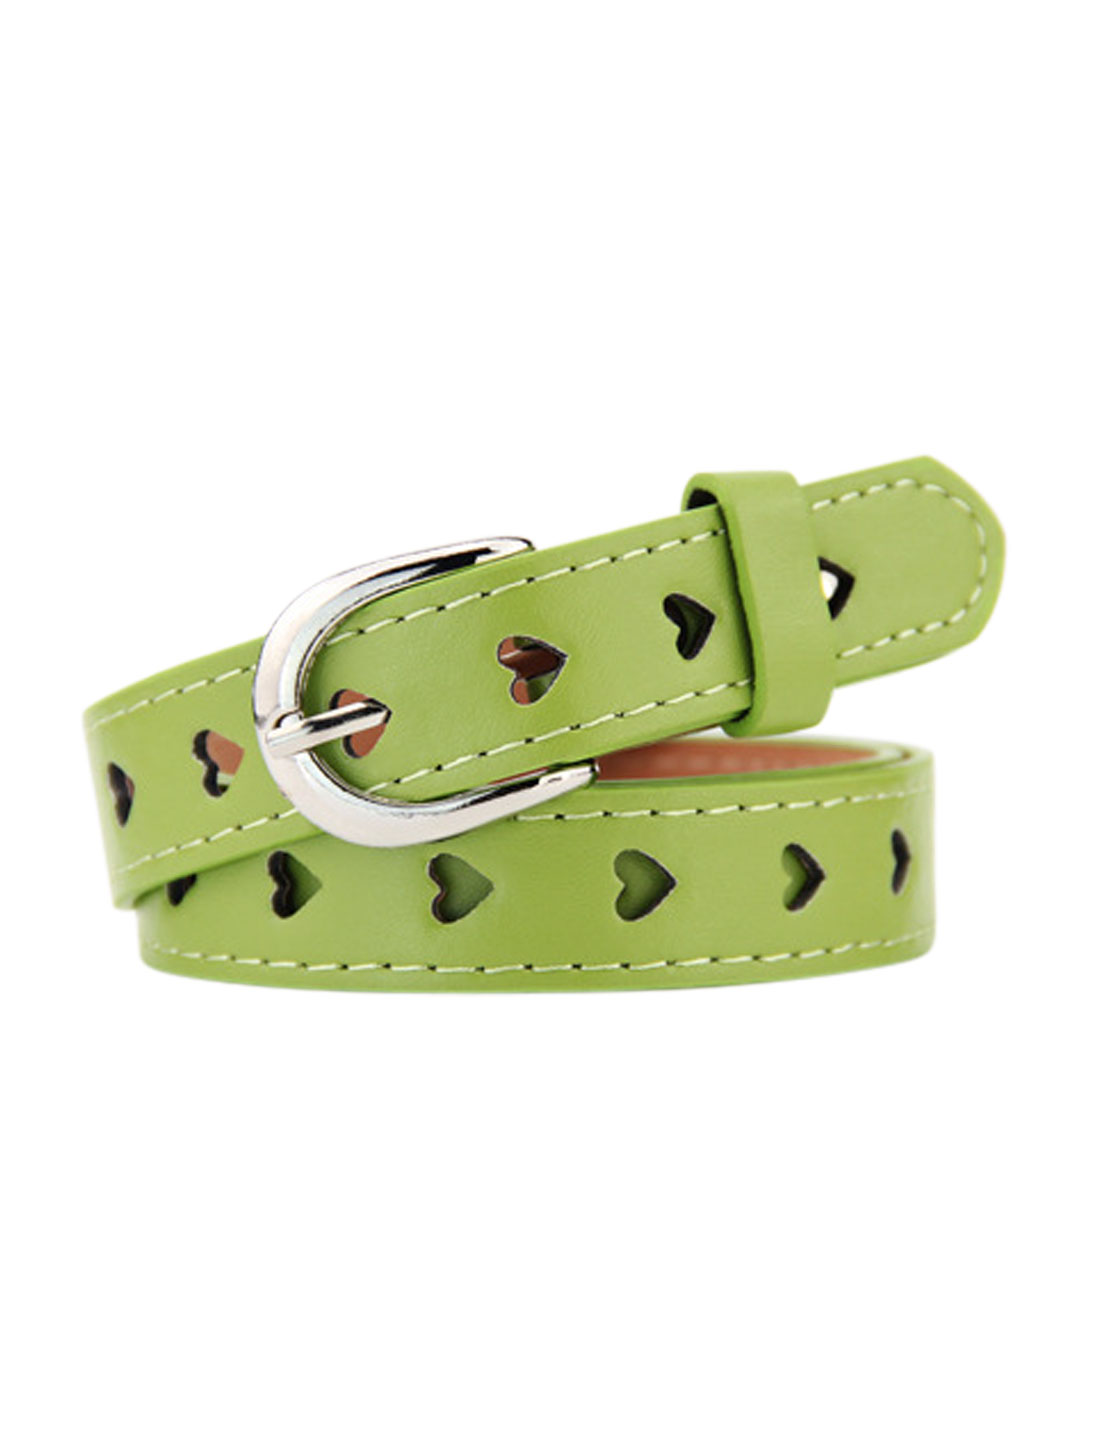 Women Single Prong Buckle Hollow Heart PU Waist Belt Green